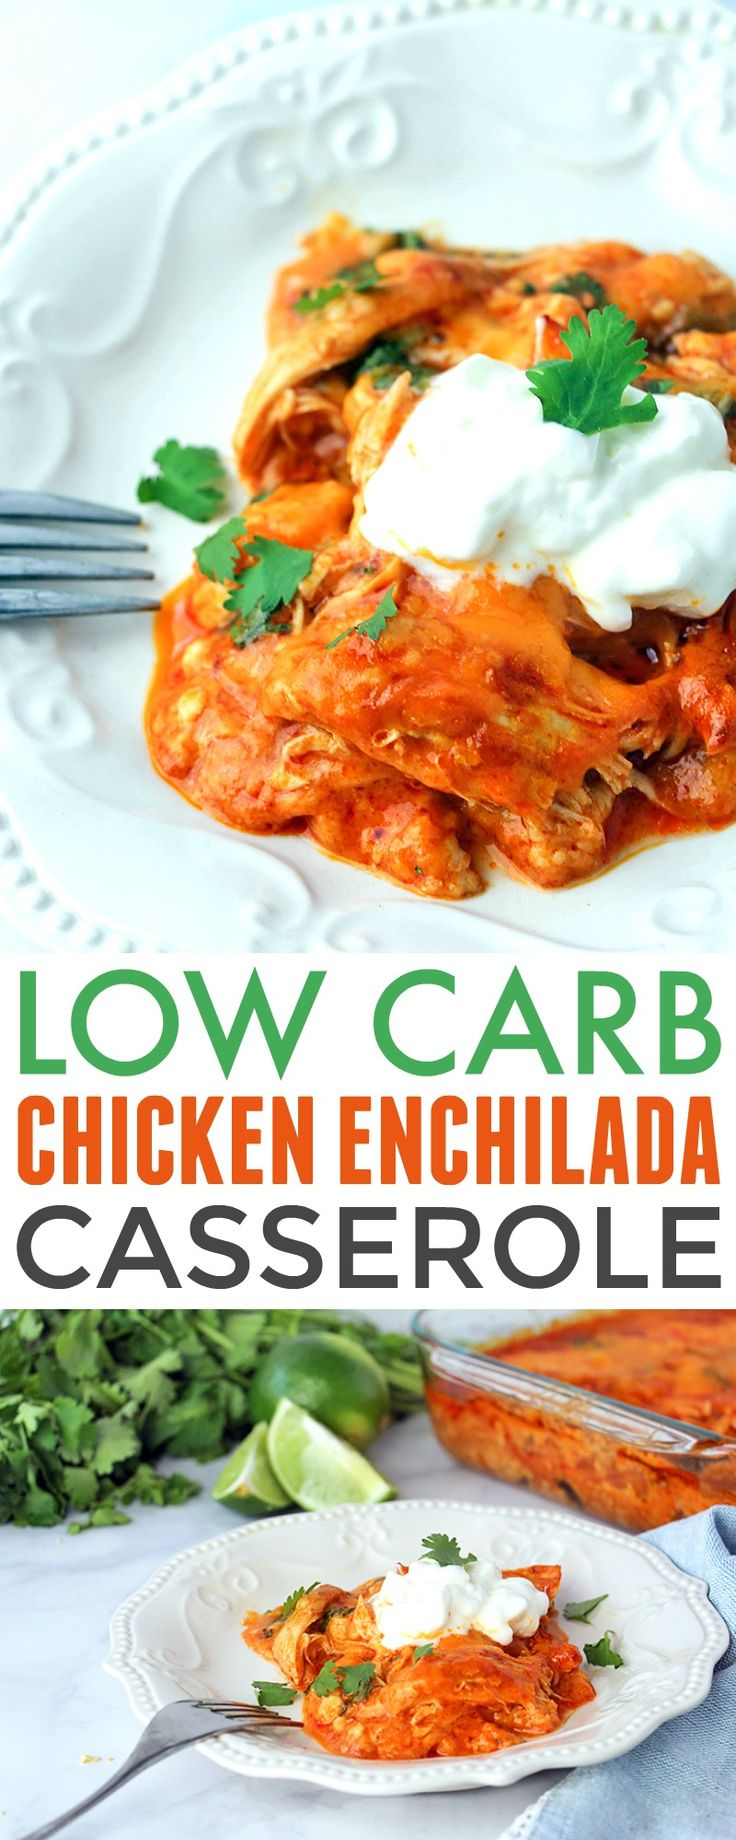 Low Carb Chicken Enchilada Casserole - easy and delish way to enjoy enchiladas on a low carb or keto diet. It's based off the America's Test Kitchen Chicken Enchiladas so you know it's good! https://www.730sagestreet.com/low-carb-chicken-enchilada-casserole/ #lowcarb